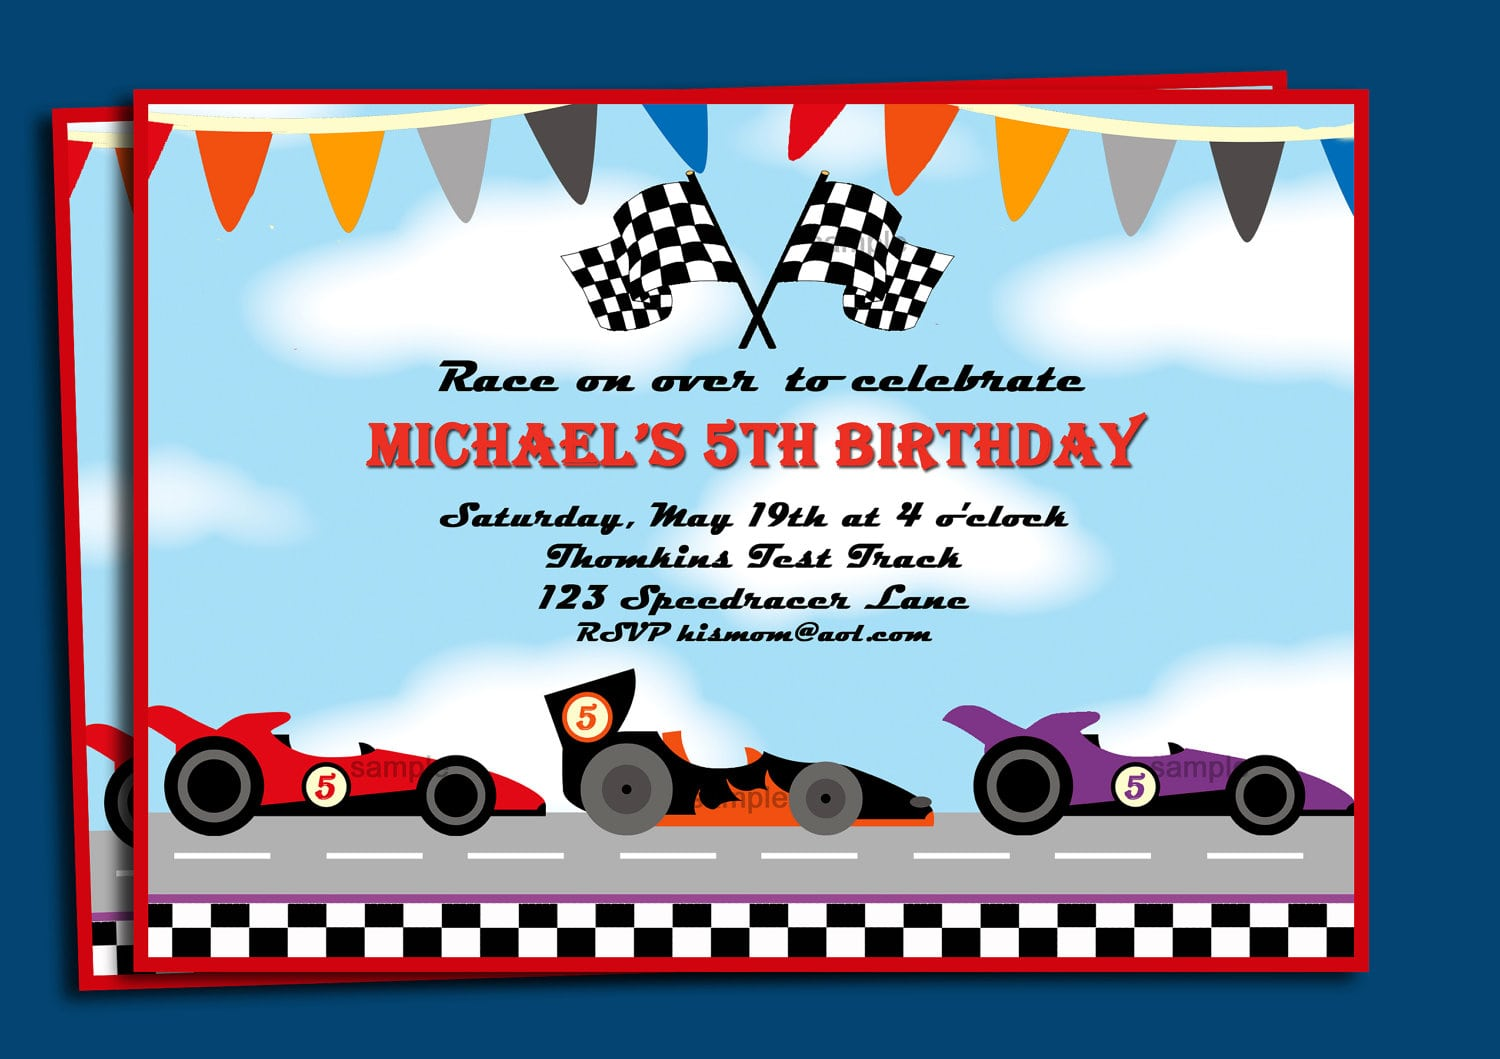 Cars Invitation Card Template Free: Race Car Invitation Free Printable